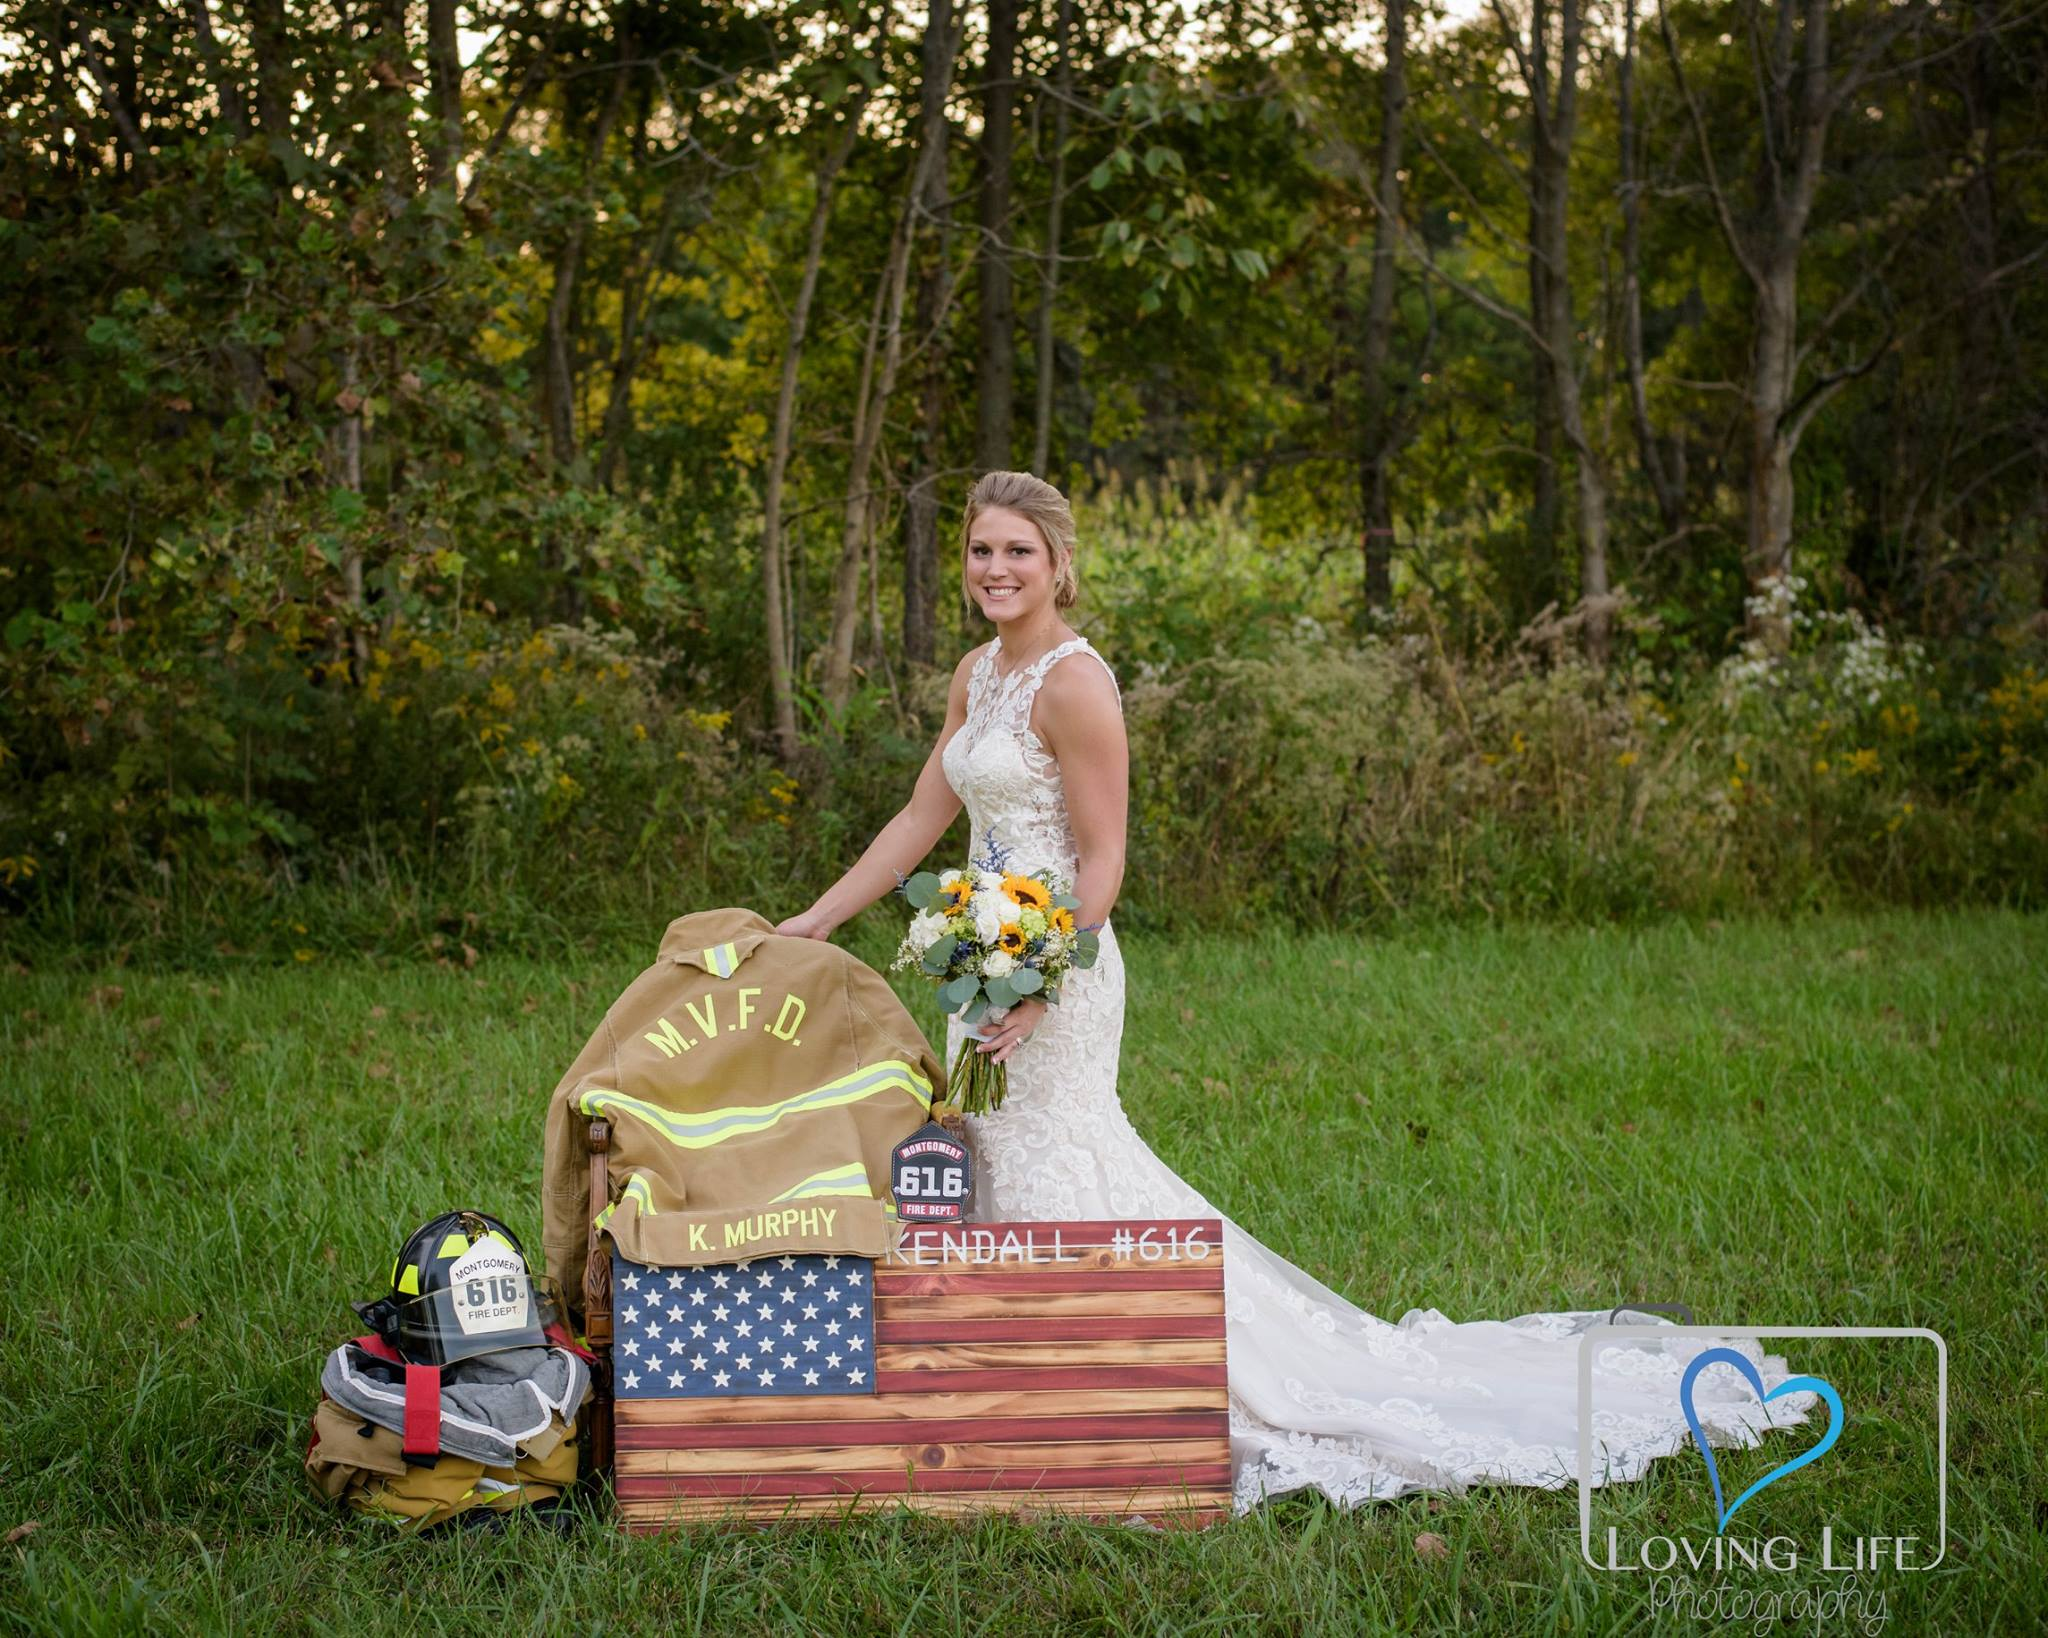 Ind. bride takes wedding photos alone after fiancé killed